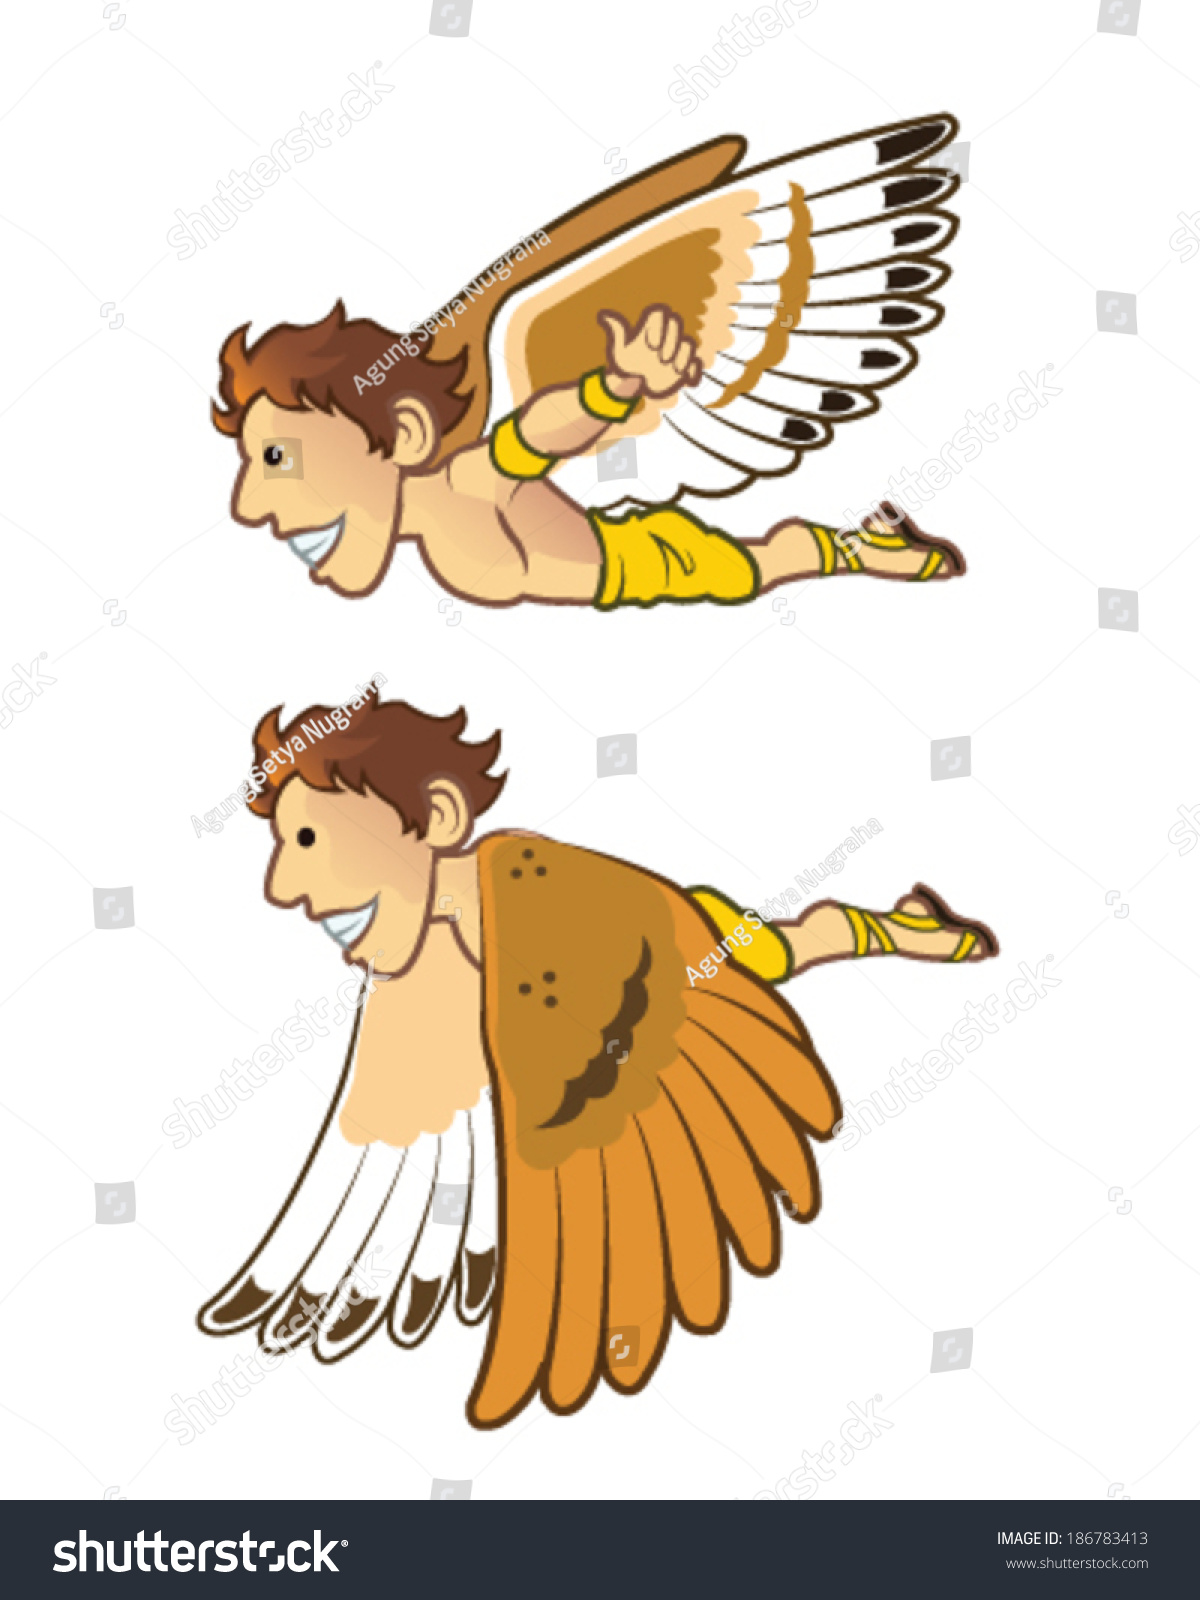 Daedalus And Icarus Clipart | www.imgkid.com - The Image ...